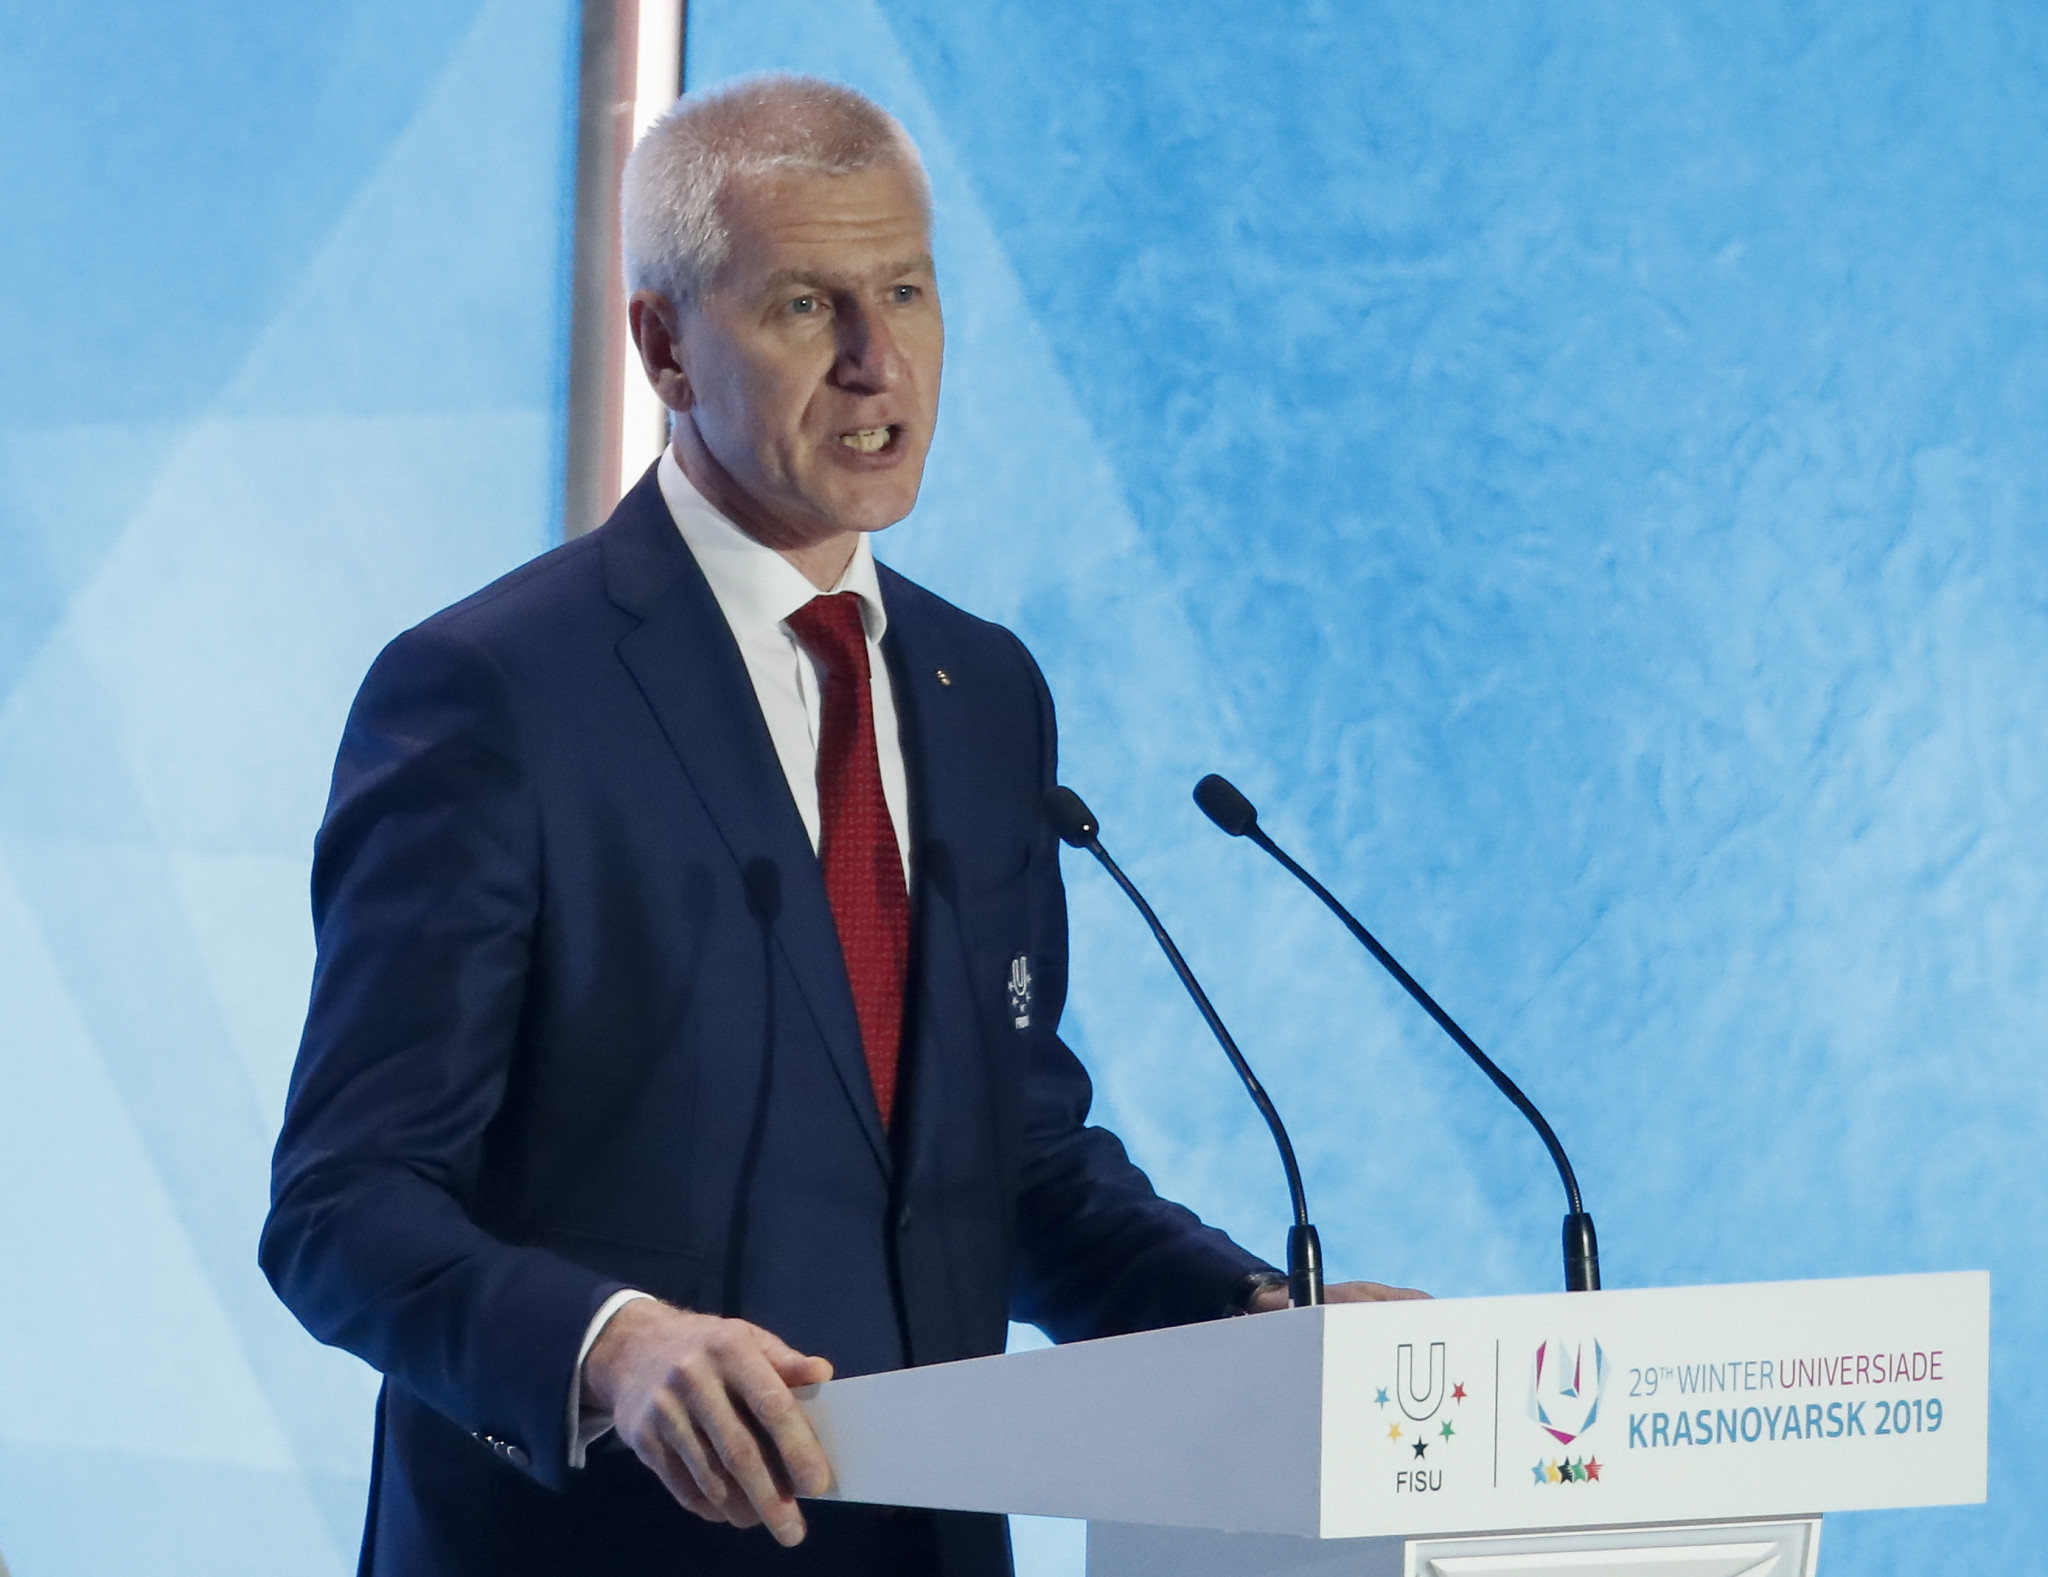 Yekaterinburg 2023 preparations unaffected by Matytsin stepping aside, general director insists